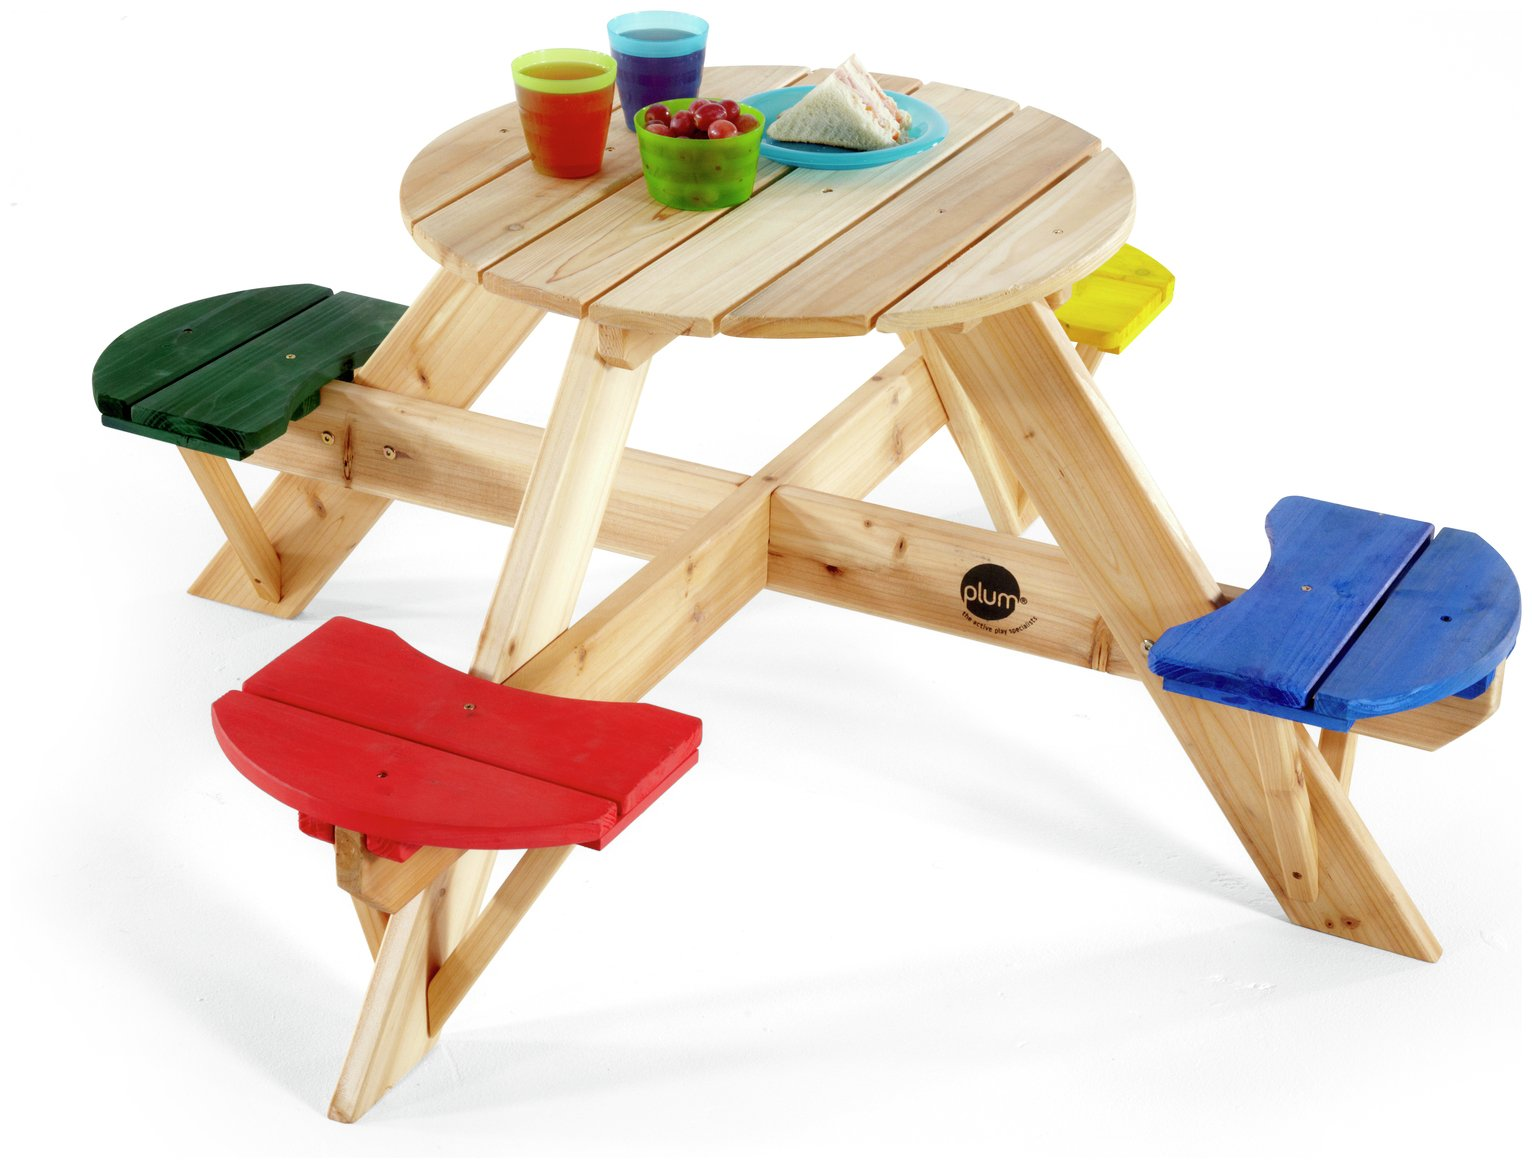 plum-kids-garden-picnic-table-with-coloured-seats